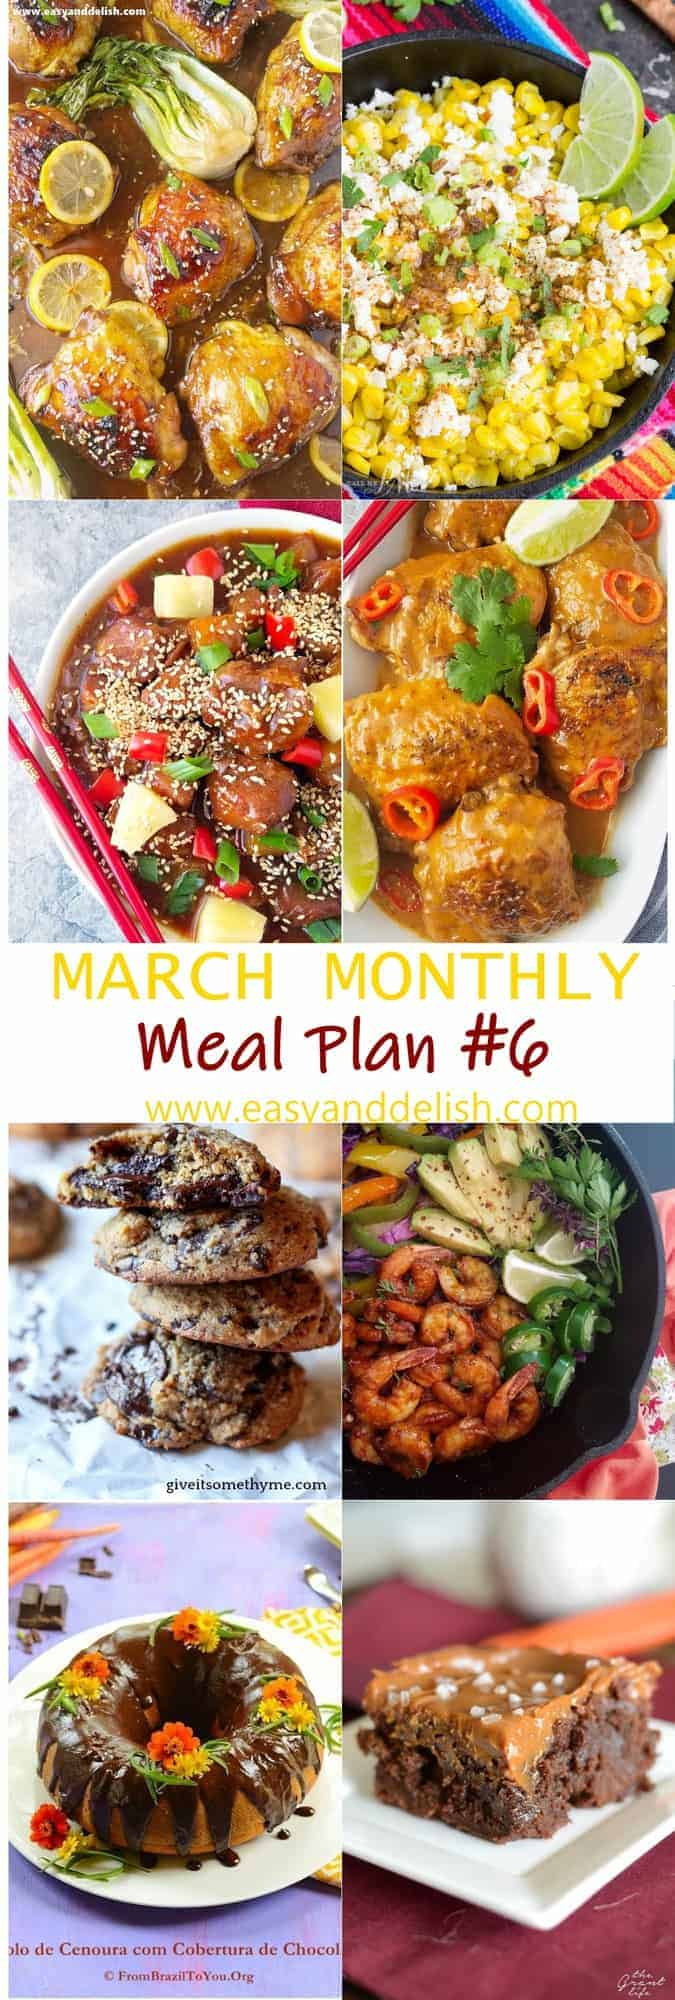 8 combined images showing dishes from March monthly meal plan